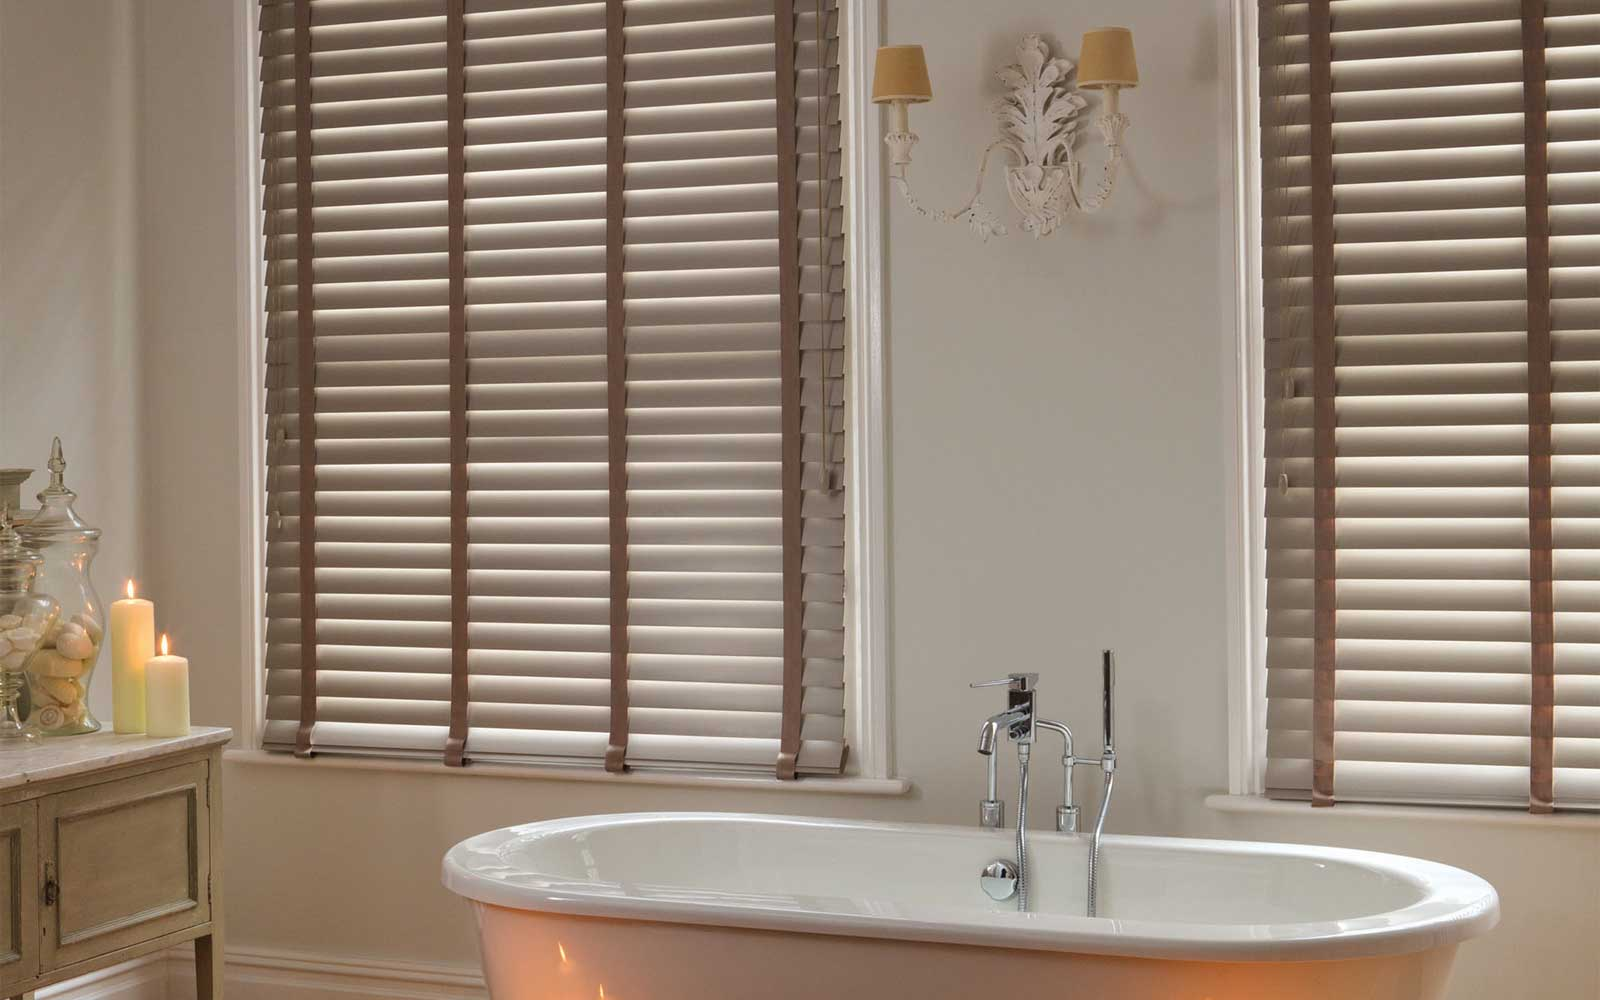 Bathroom Shutters Uk. Bathroom Shutters West Country